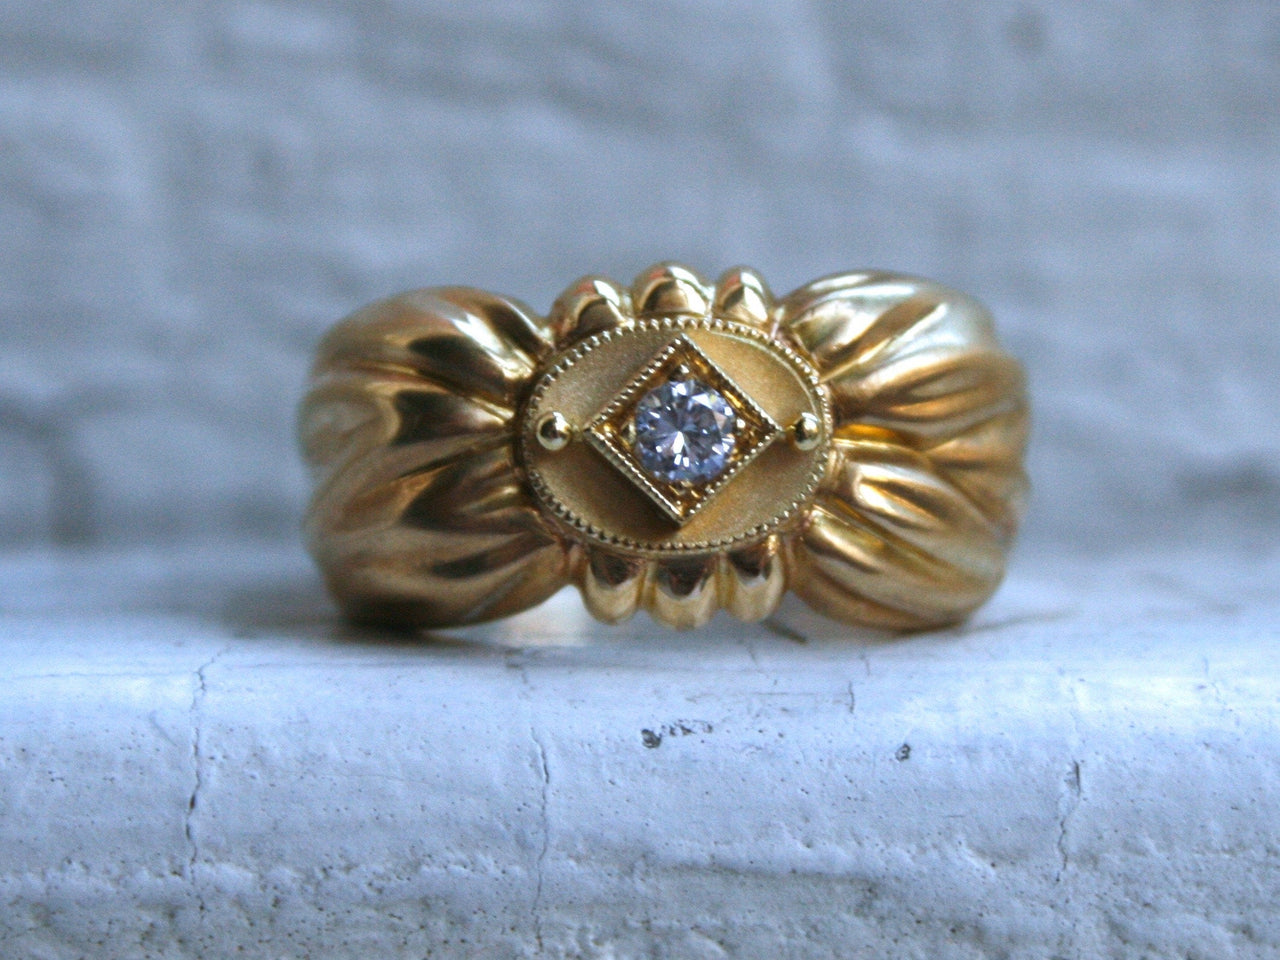 Awesome Vintage 18K Yellow Gold Diamond 'Bow' Ring by SeidenGang- 0.15ct.